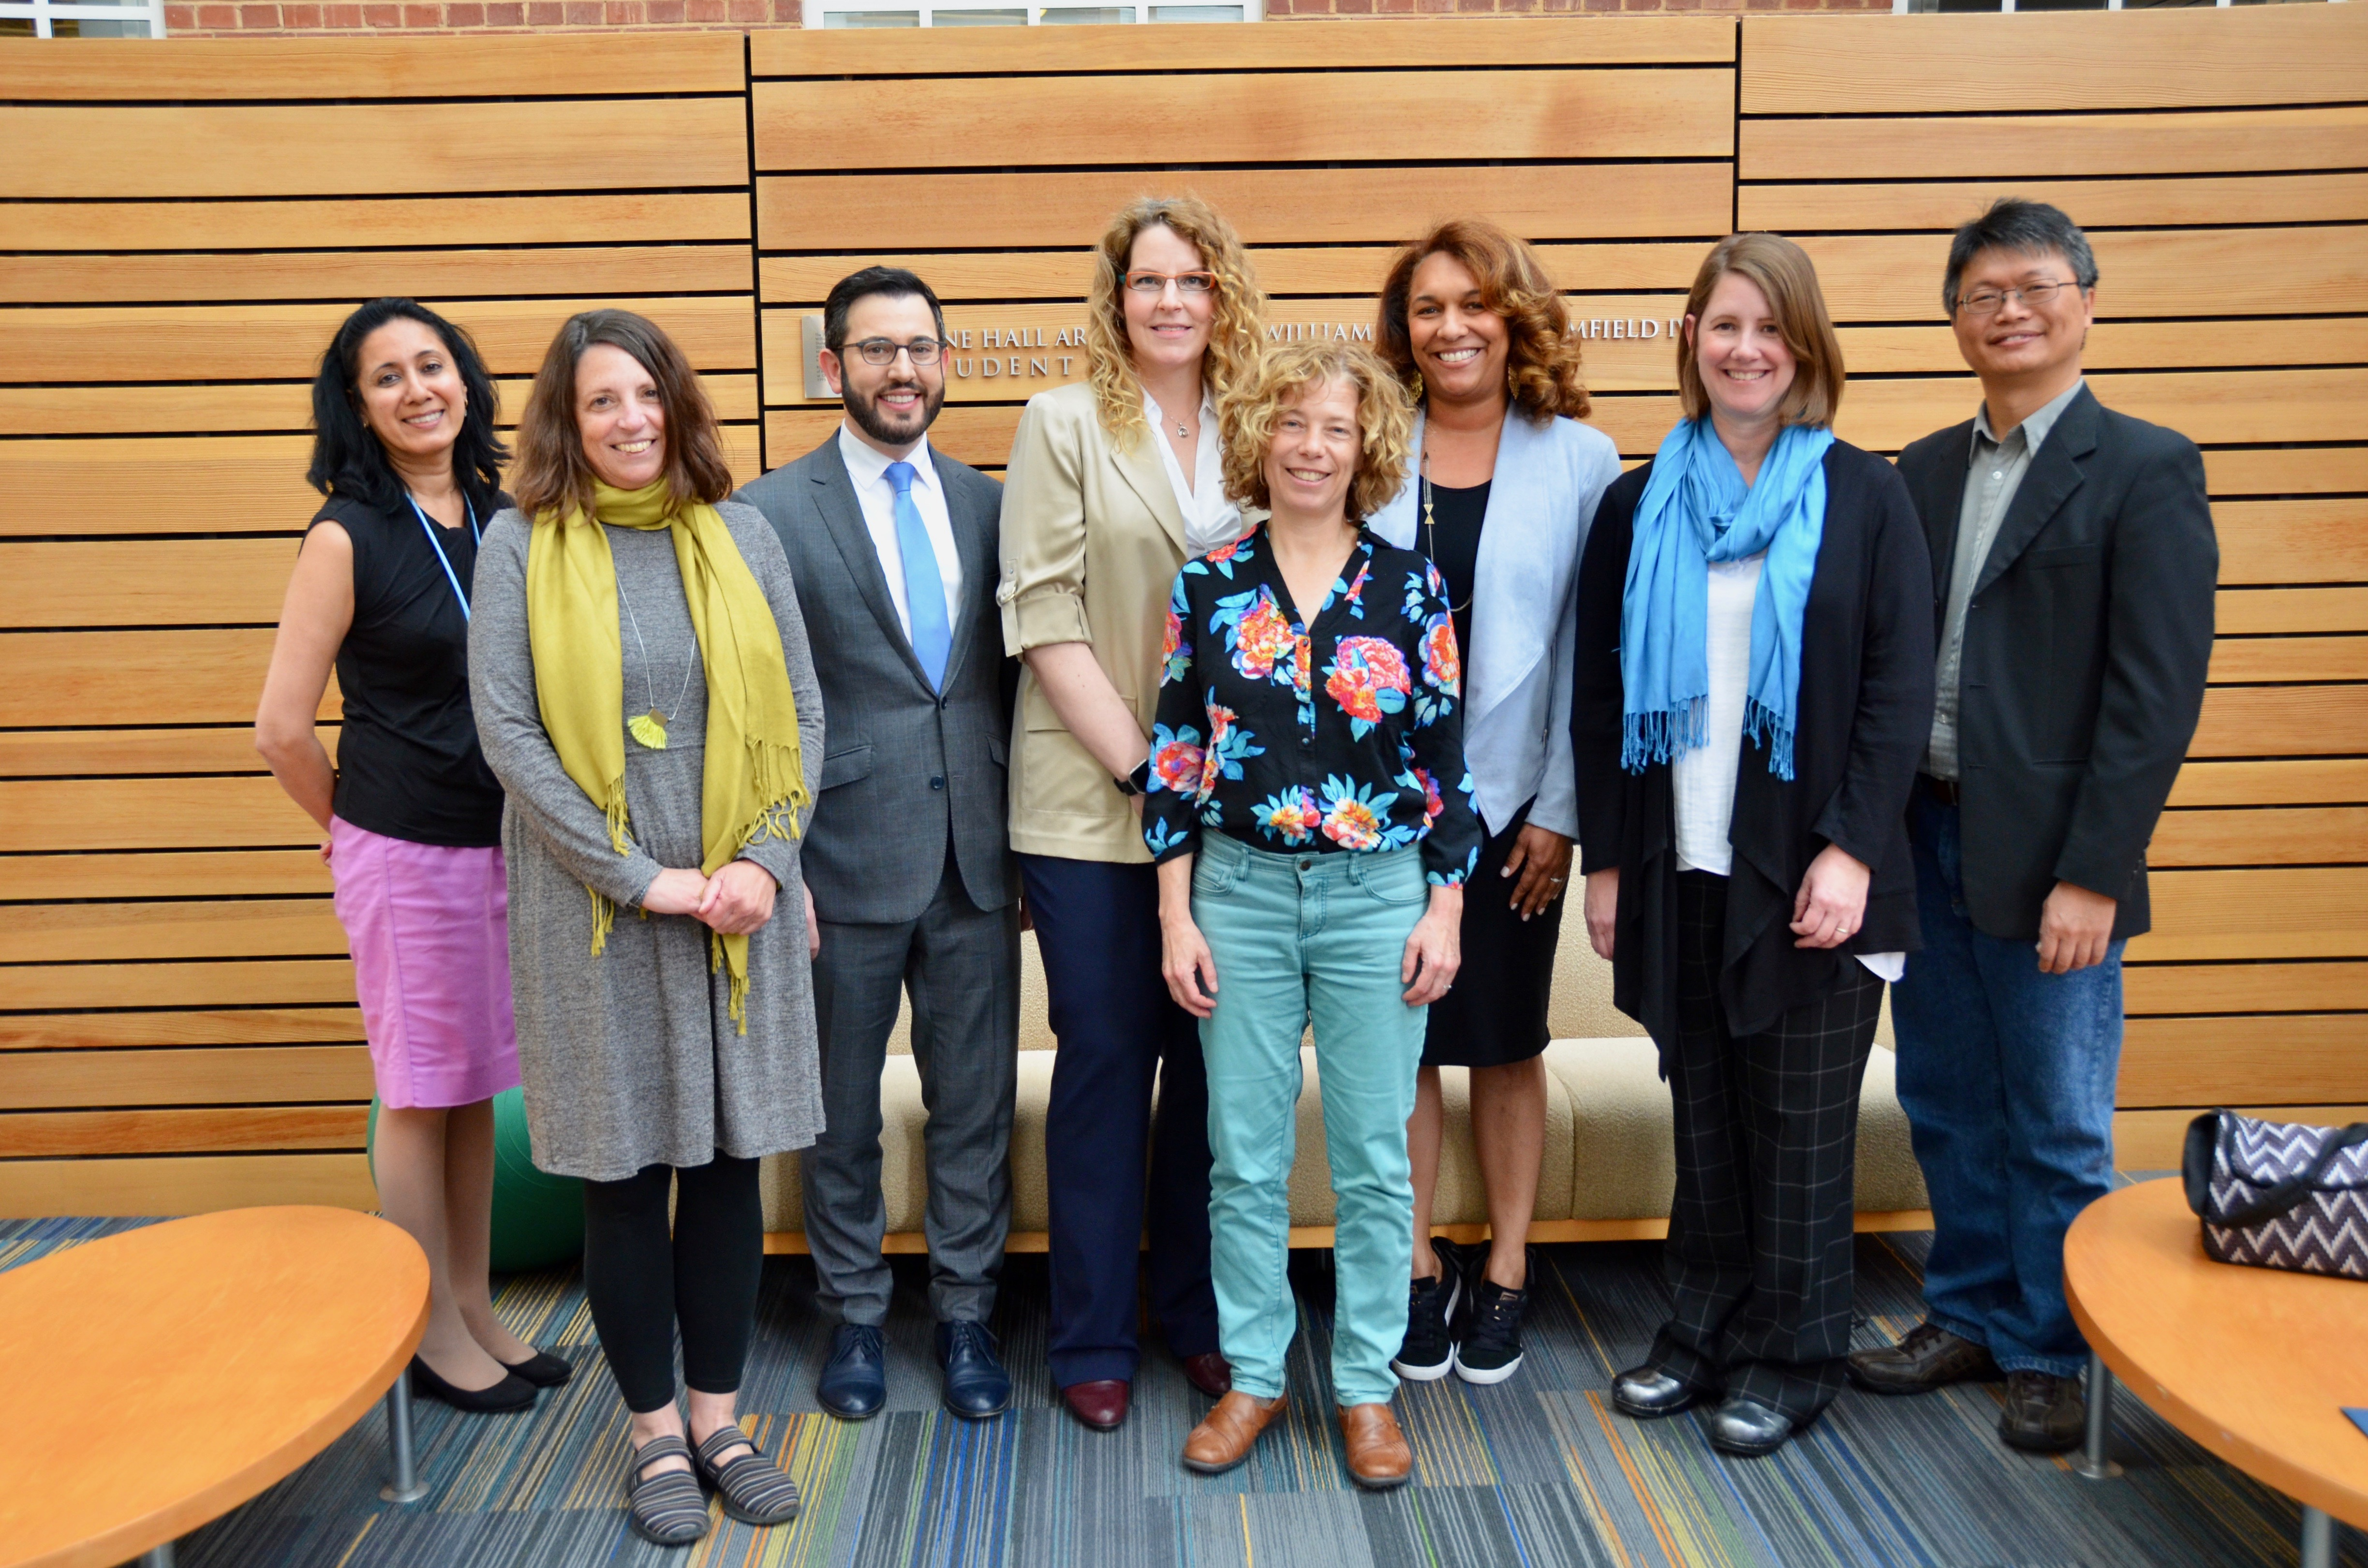 On March 25, awards for innovative teaching were presented (l-r) to Dr. Seema Agrawal, Dr. Alexandra Lightfoot, Dr. Benjamin Mason Meier; Dr. Alyssa Mansfield Damon, Dr. Karin B. Yeatts, Dr. Dana Rice, Catherine Sullivan and Dr. Feng-Chang Lin.